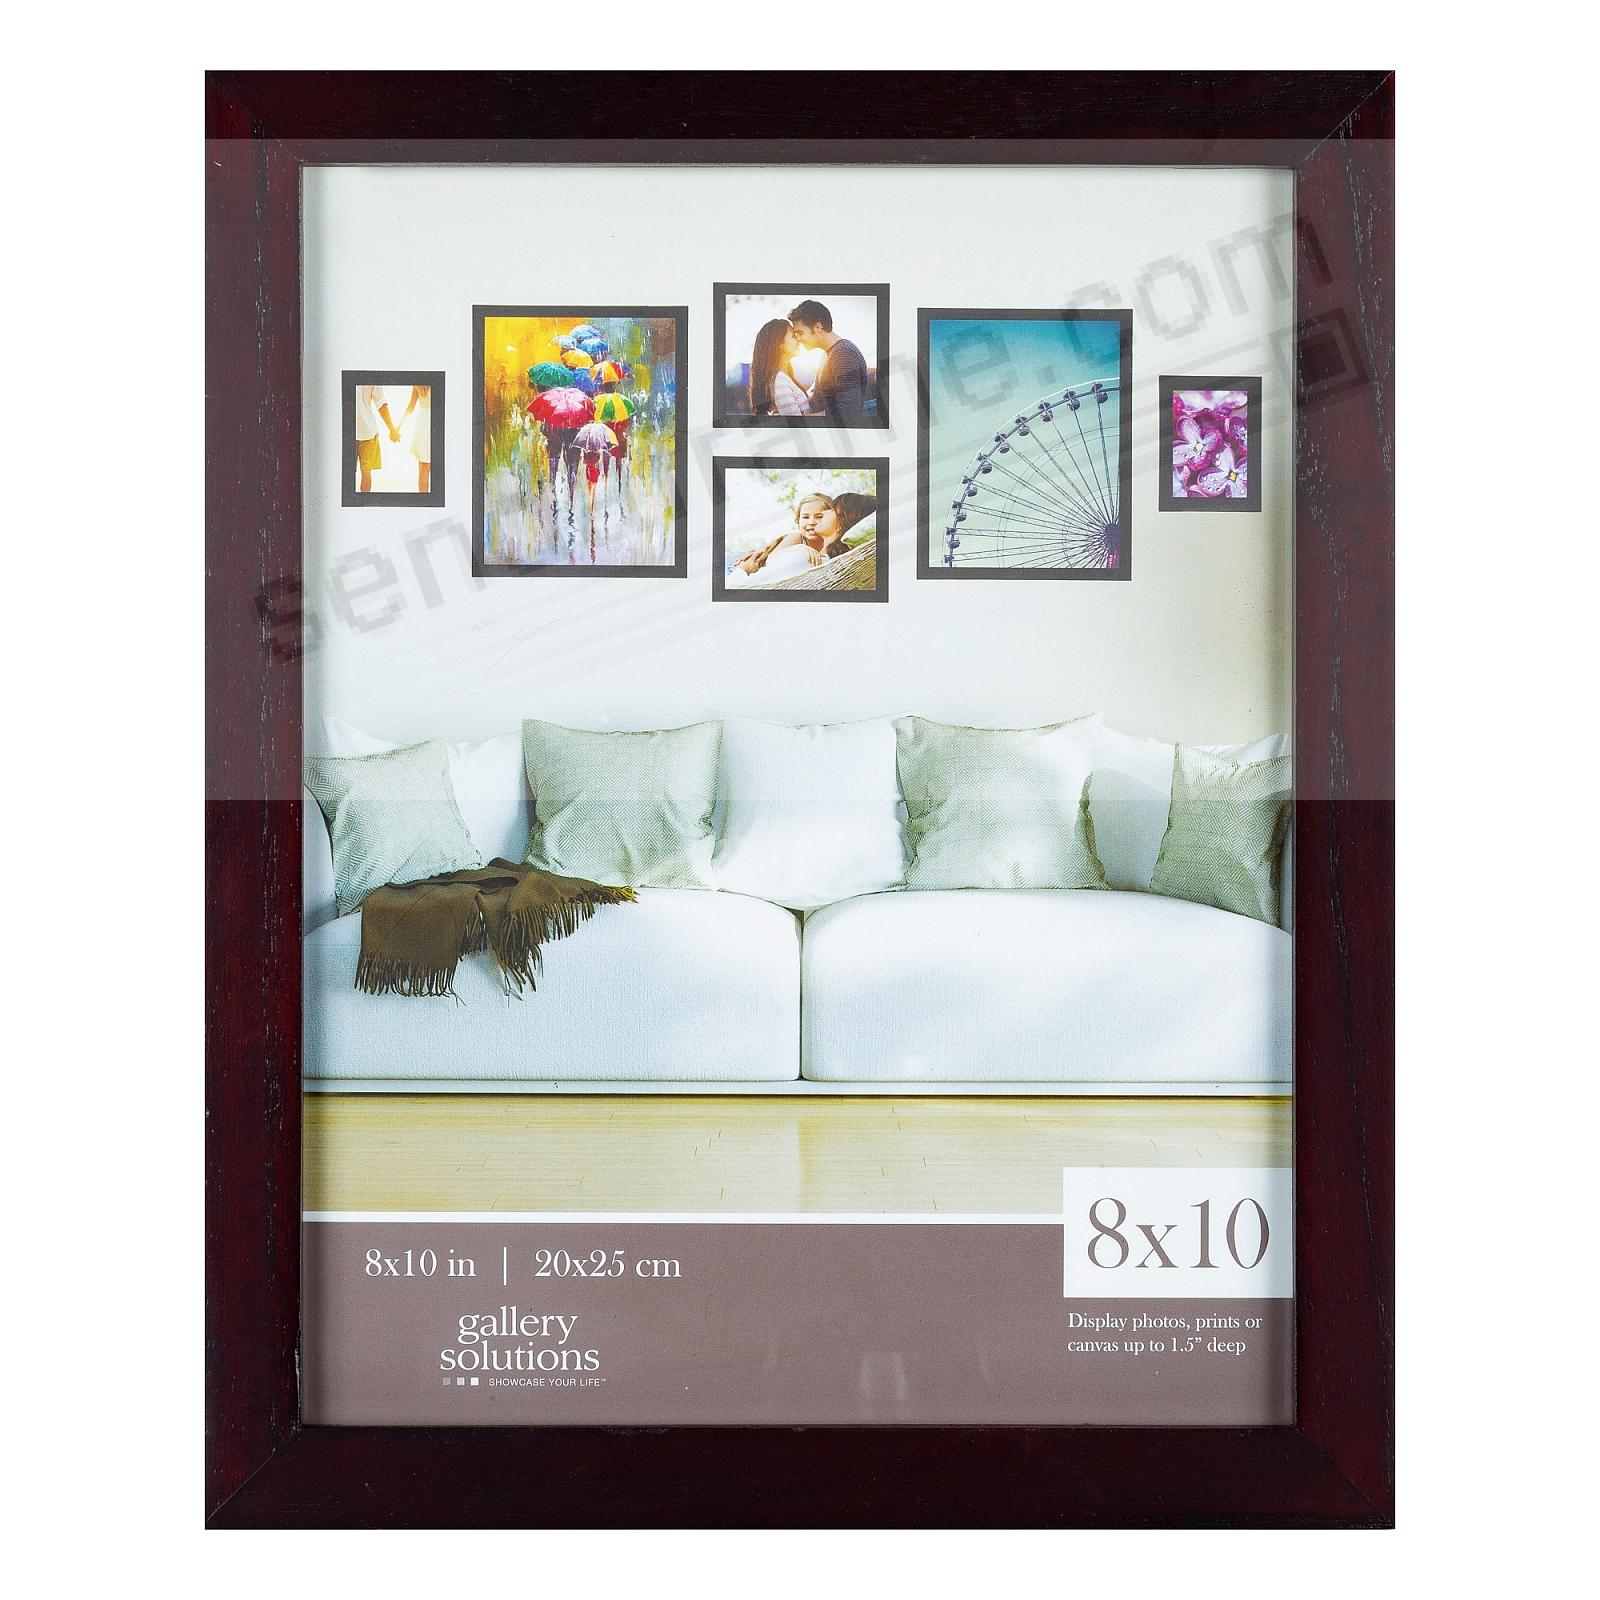 Walnut GALLERY 8x10 frame by Gallery Solutions®